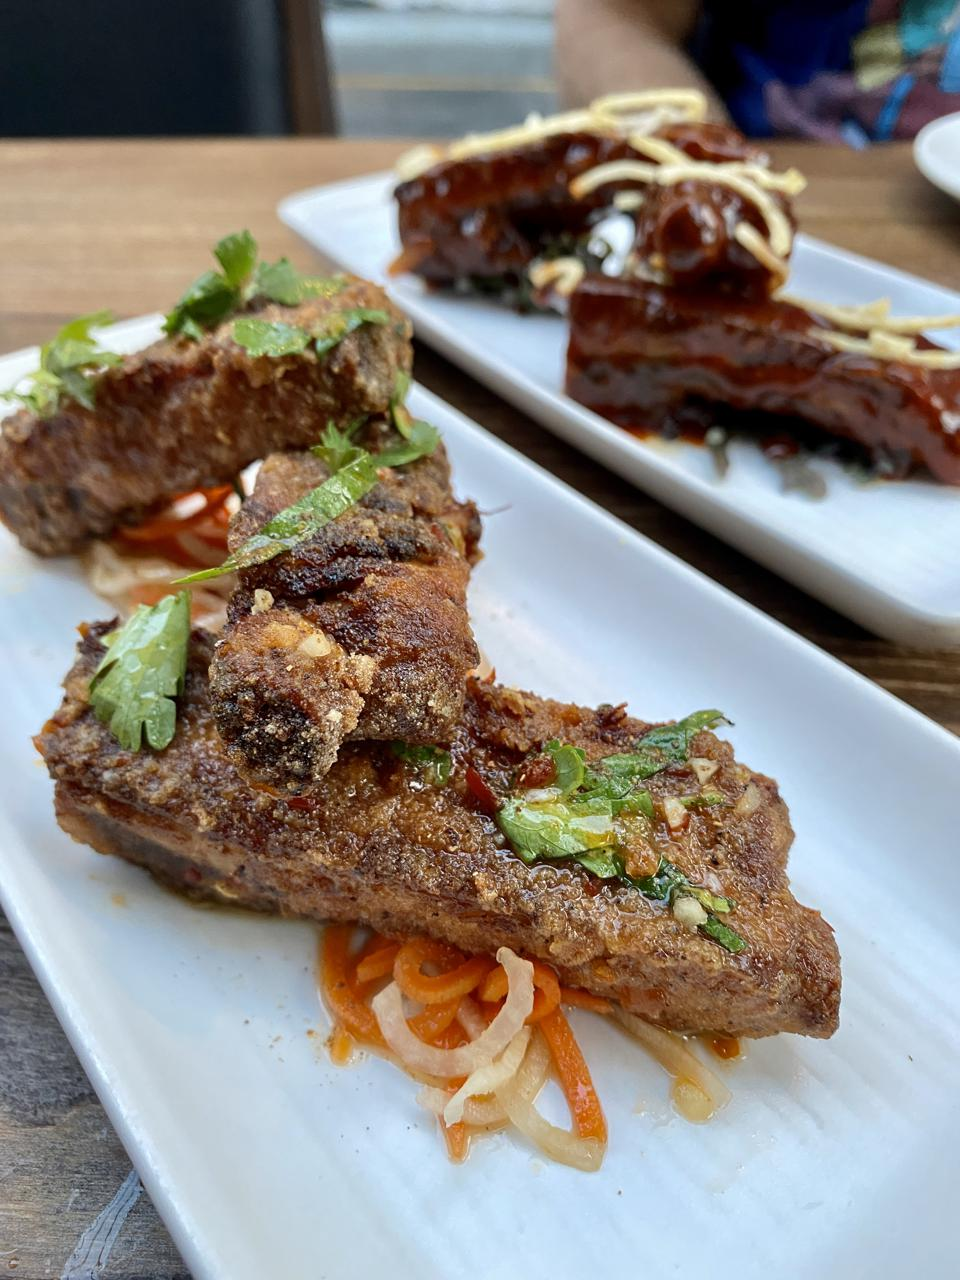 Dry fried Vietnamese ribs with preserved orange nuoc cham, fresh herbs, pickled carrots, Vietnamese seven spice.